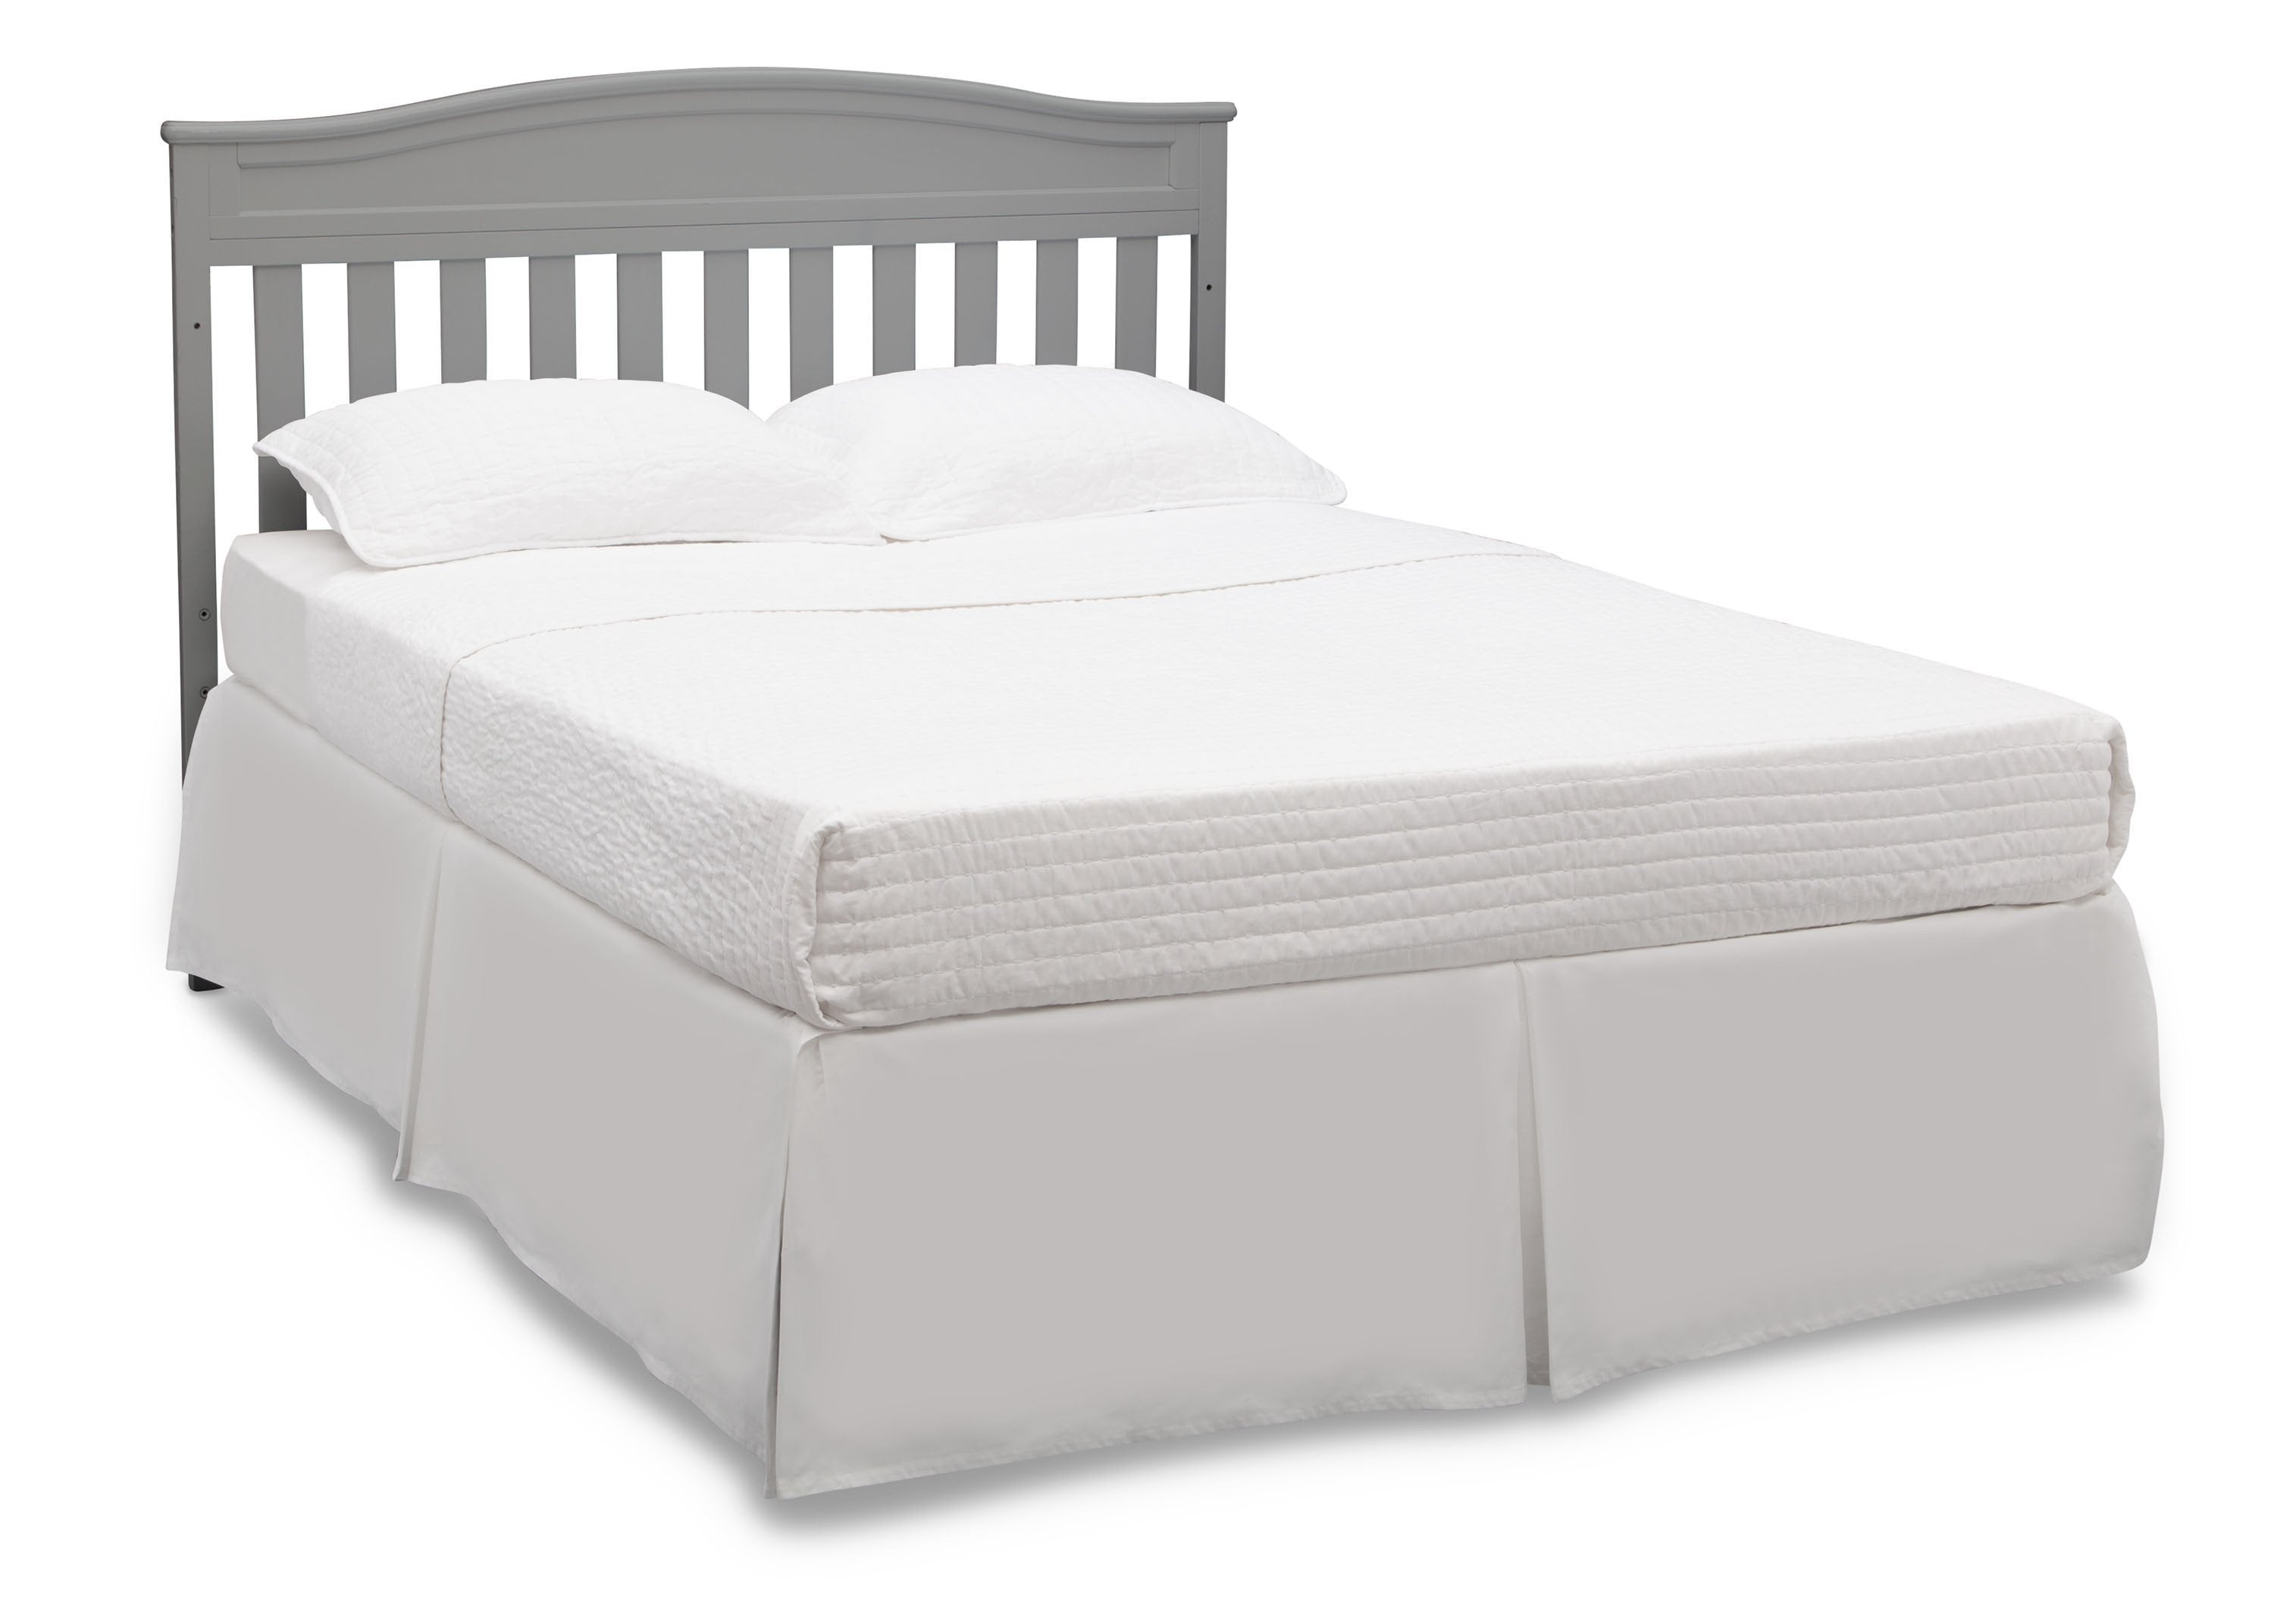 a mattress overstock free size home bed garden foam inch full shipping product covered in today fabric waterproof